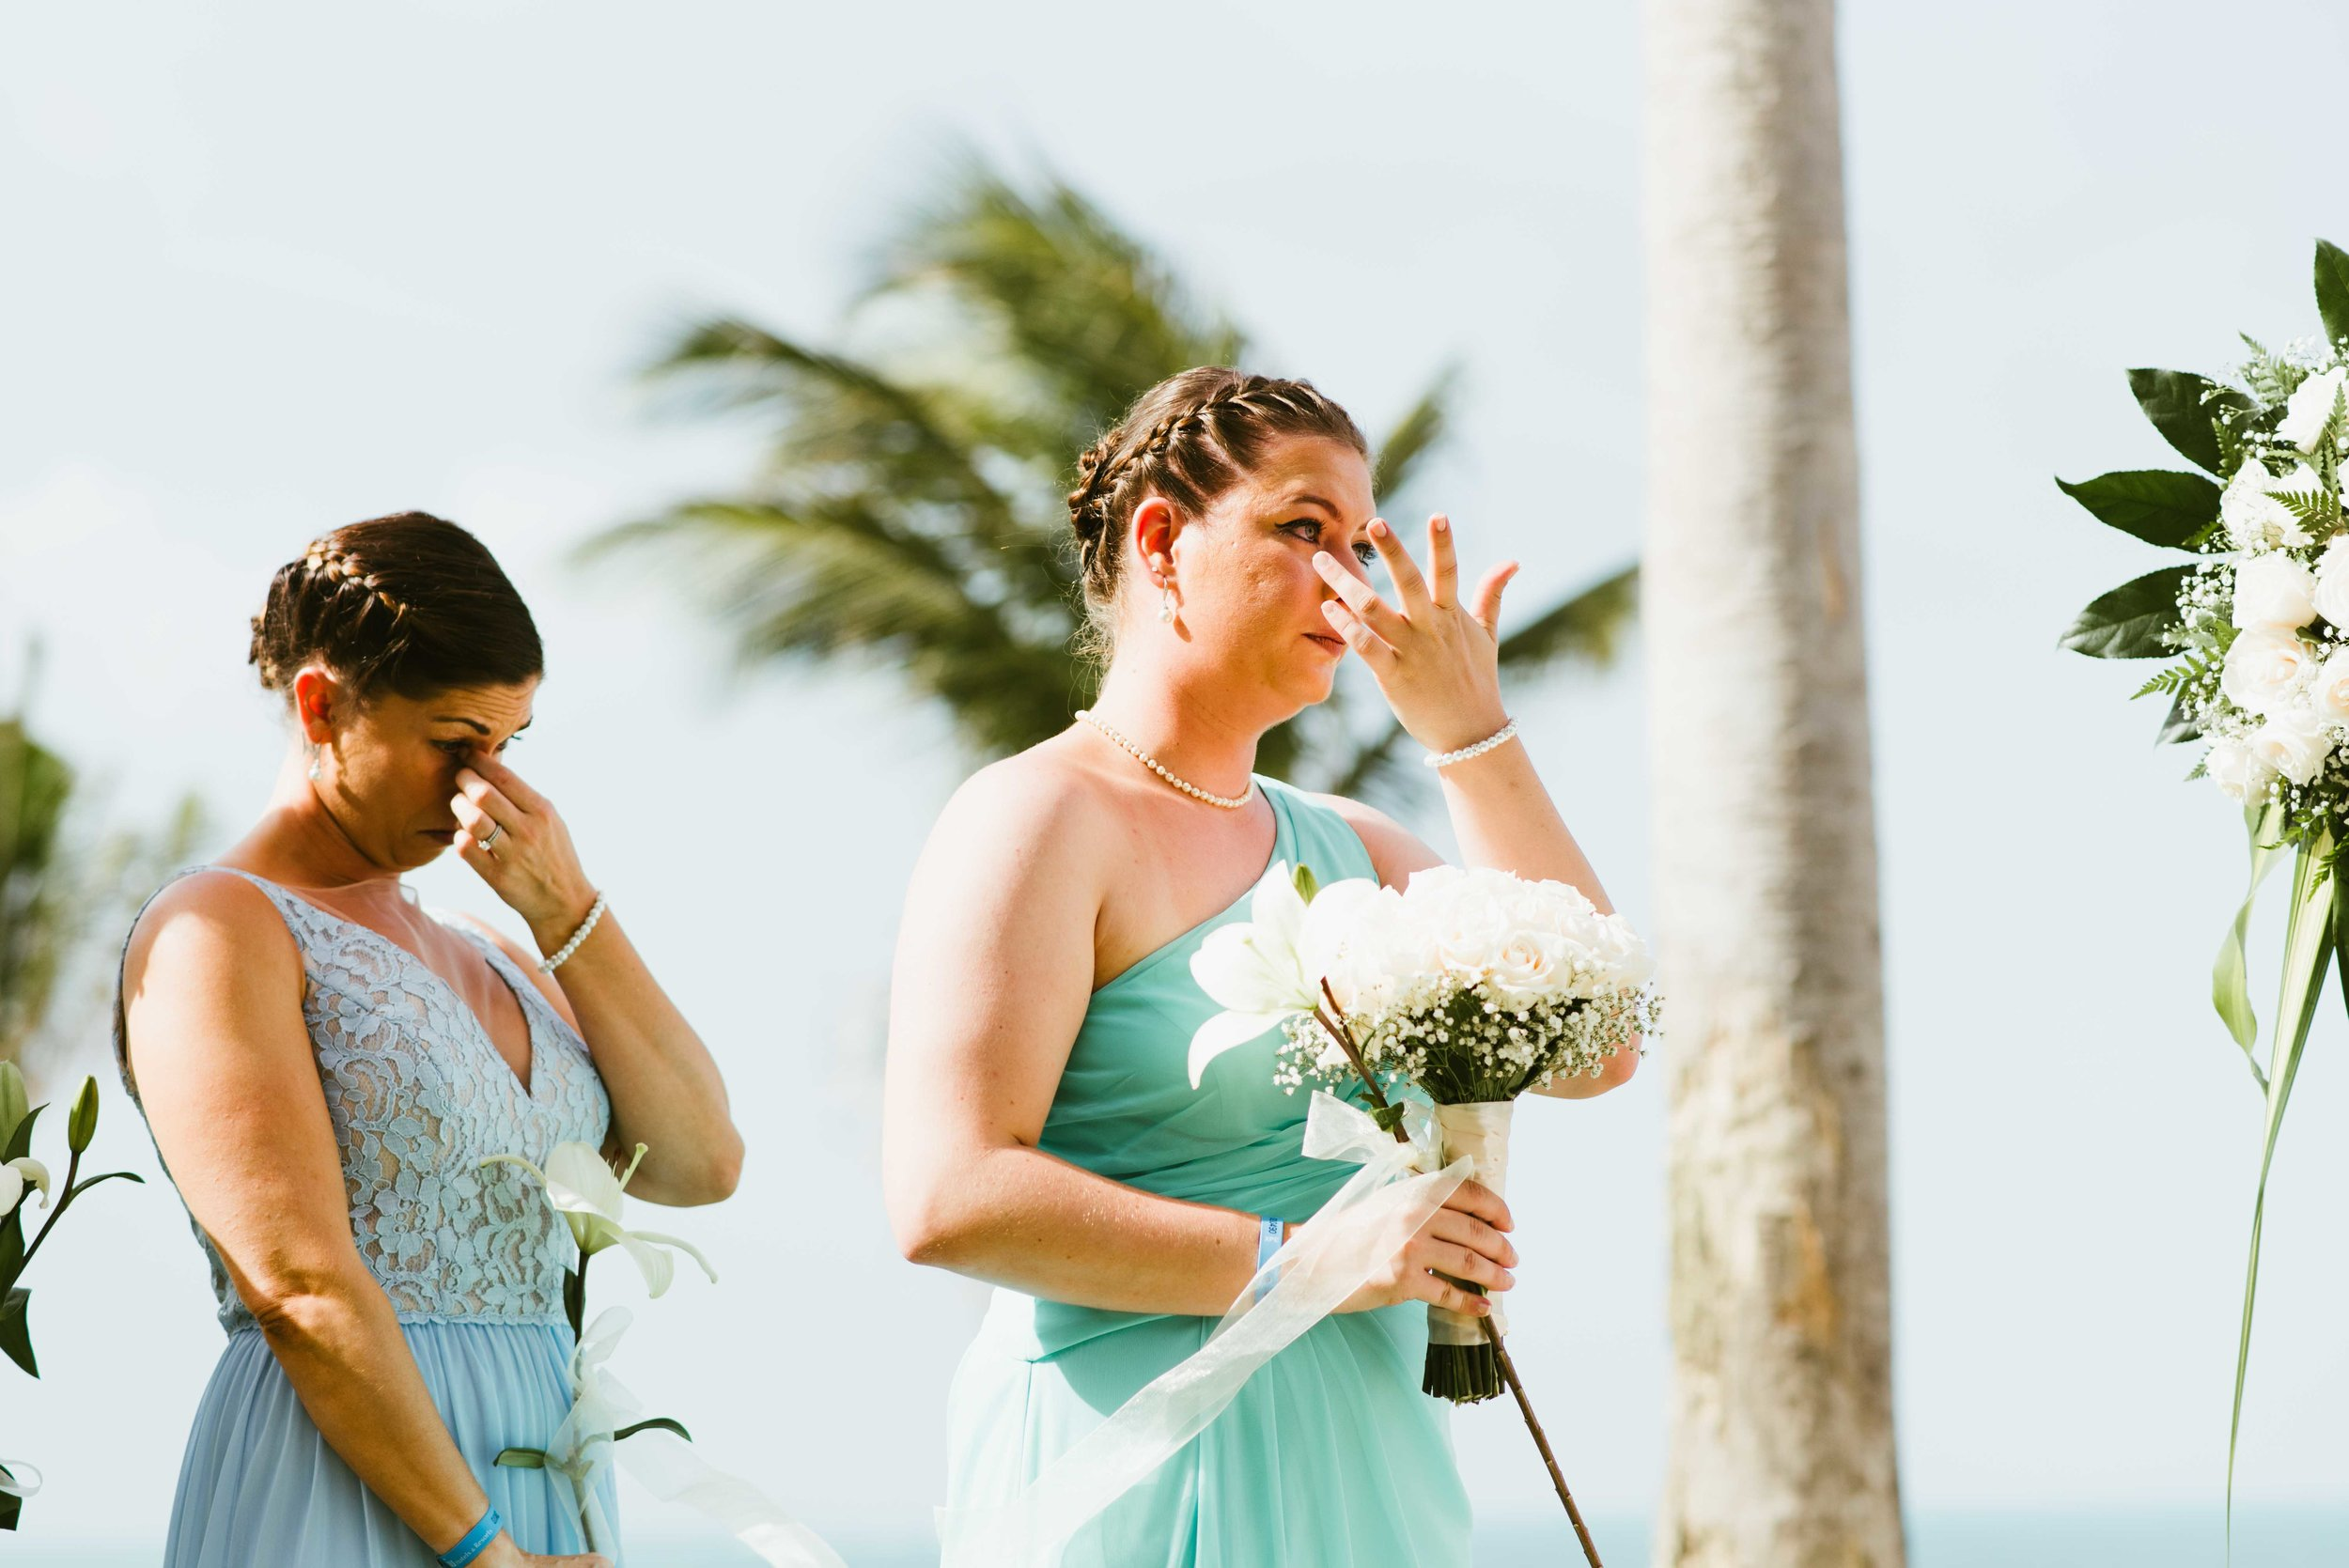 Beach-Wedding-Photography-Cancun-Elopement-Destination-Elopement-Photography-Destination-Beach-Wedding-+Costa-Rica-Wedding-Photography-Beach-Wedding-Photos-teresawoodhull-Cancun-Elopement-Beach-Wedding-+Sunset-Beach-Wedding-Fotografia-de-bodas-Nicoya-Peninsula-Elopement-Photographer-Santa-Teresa-Elopement-Photographer-Adventure-elopement-photographer-Santa-Teresa-Wedding-Photographer-Adventure-Wedding-Boda-playa-santa-teresa-Adventure-Wedding-Photography-Adventure-Wedding-Photographer-Beach-Elopement-Beach-Elopement-Photos-maddie-mae-Beach-Elopement-Photographer-Destination-Elopement-Photographer-Sunset-Beach-Elopement-Mexico-wedding-photographer-cabo-wedding-photographer-mexico-wedding-mexico-destination-wedding-cancun-destination-wedding-cancun-elopement-photographer-playa-del-carmen-wedding-playa-del-carmen-destination-wedding-photographer-playa-del-carmen-wedding-photography-Nicoya-Peninsula-Wedding-Photography-Nicoya-Peninsula-Wedding-Photographer-Nicoya-Peninsula-Elopement-Photography-guests-tearing-up-during-wedding-ceremony